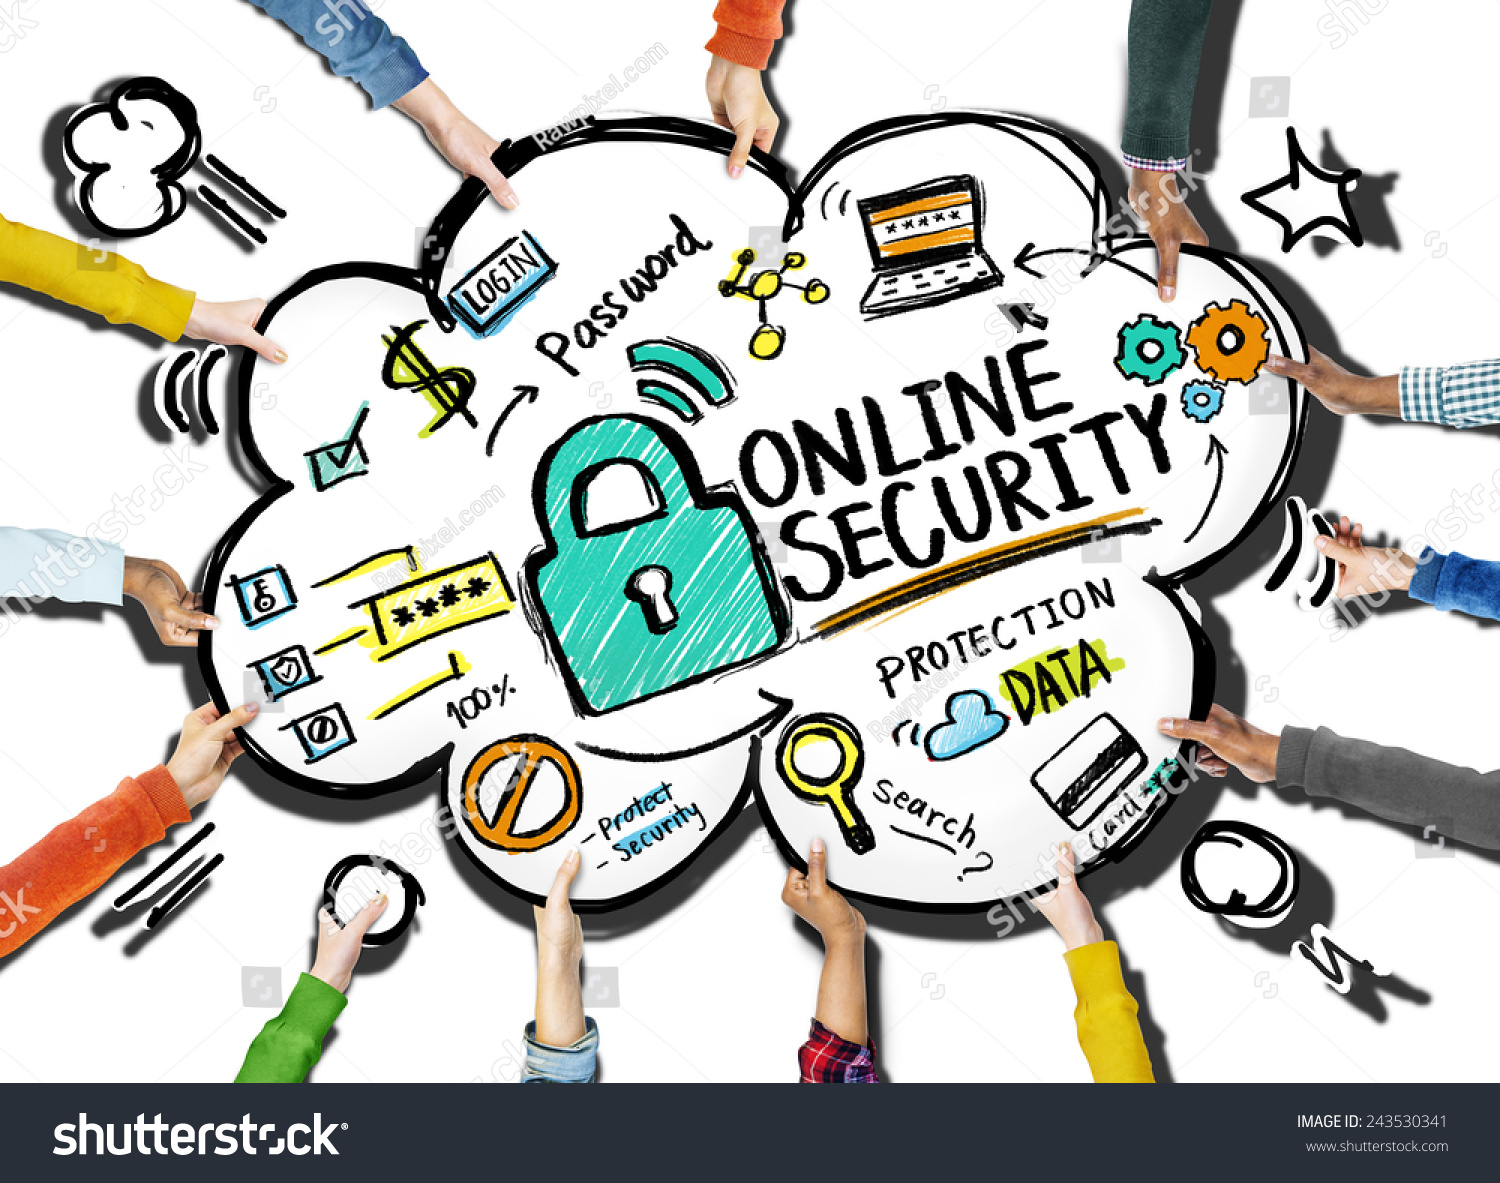 Online Security Protection Internet Safety Support Stock